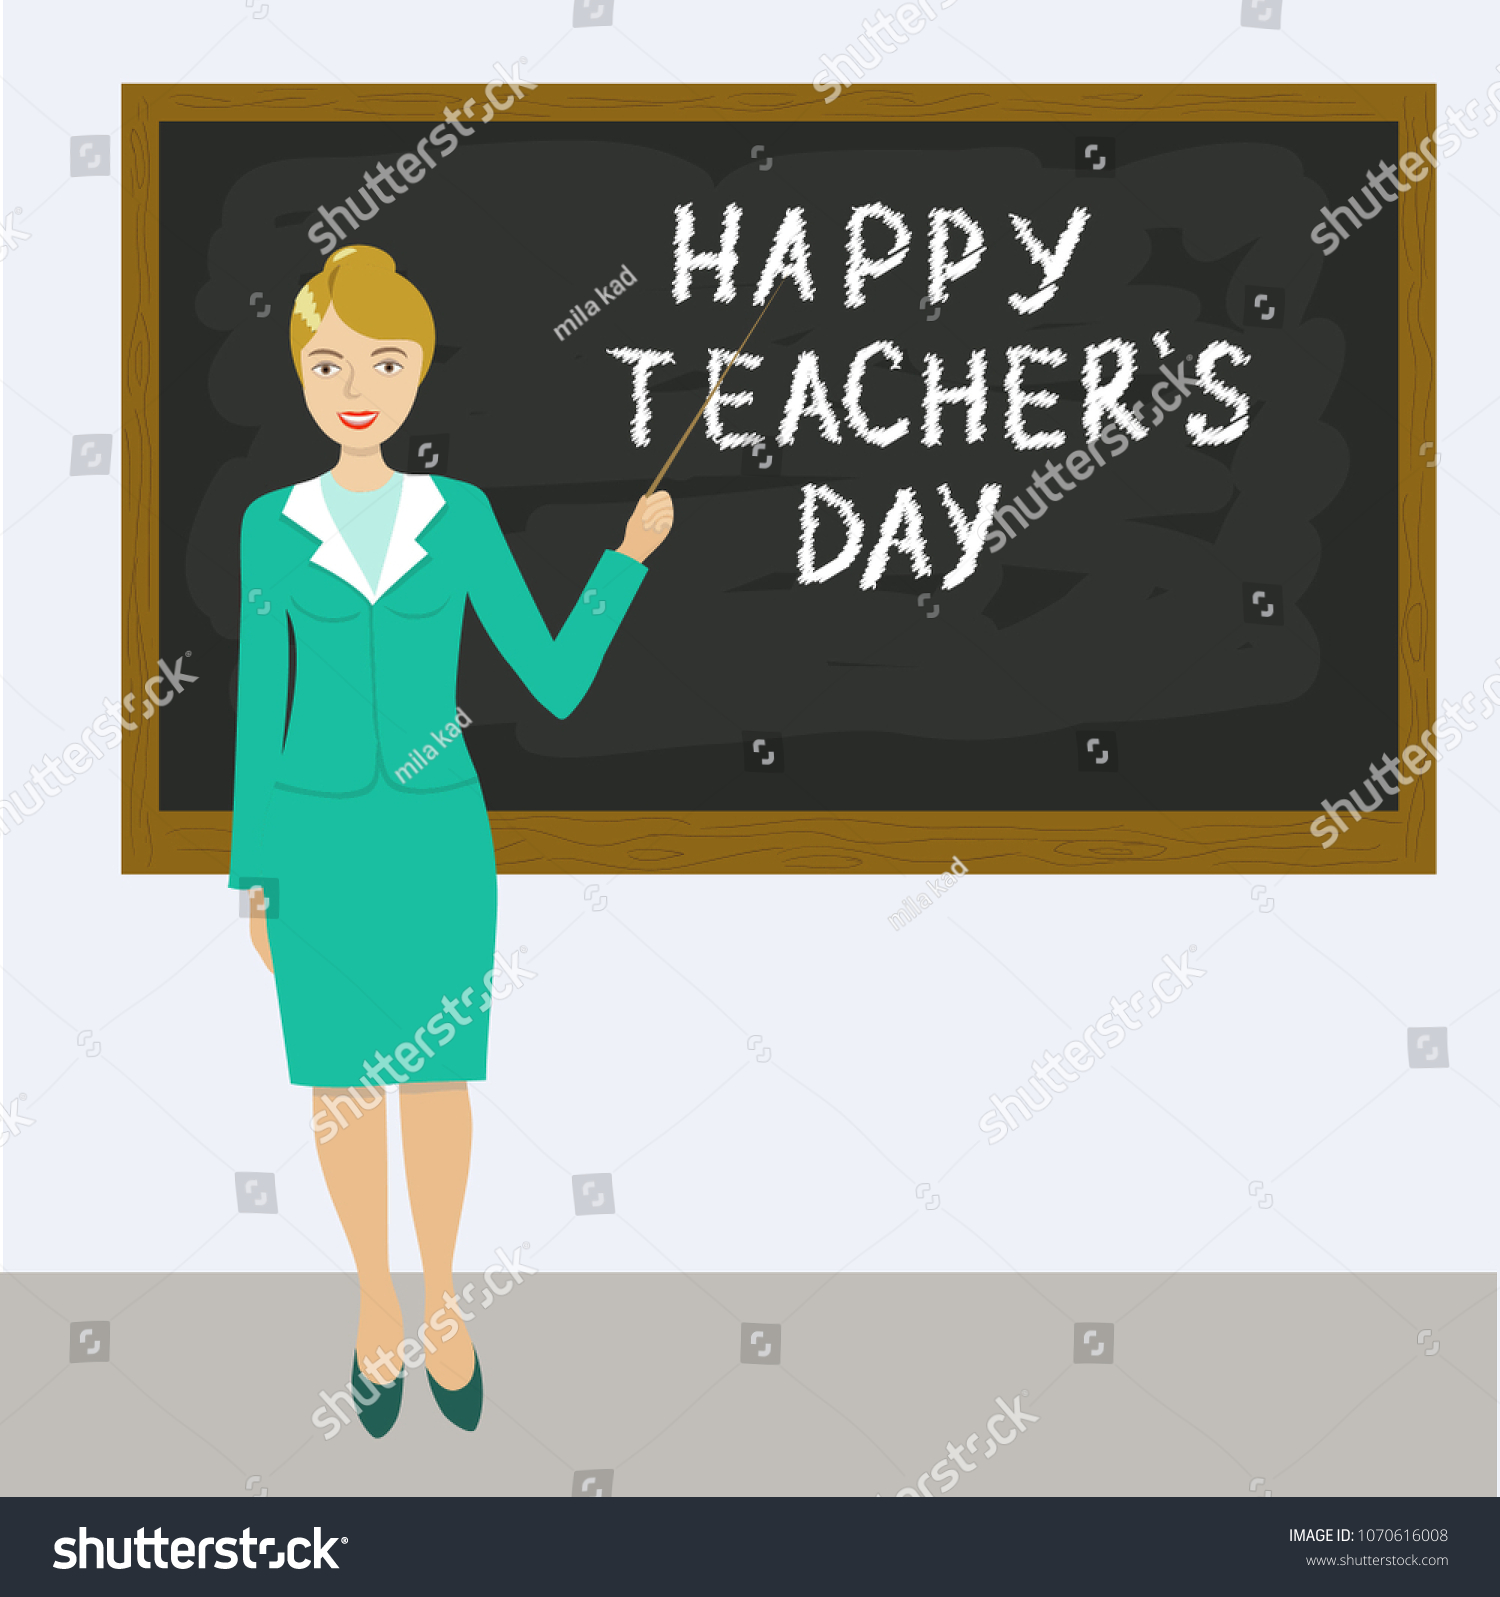 Vector Illustration Teachers Day Teacherchalkboard Greeting Stock